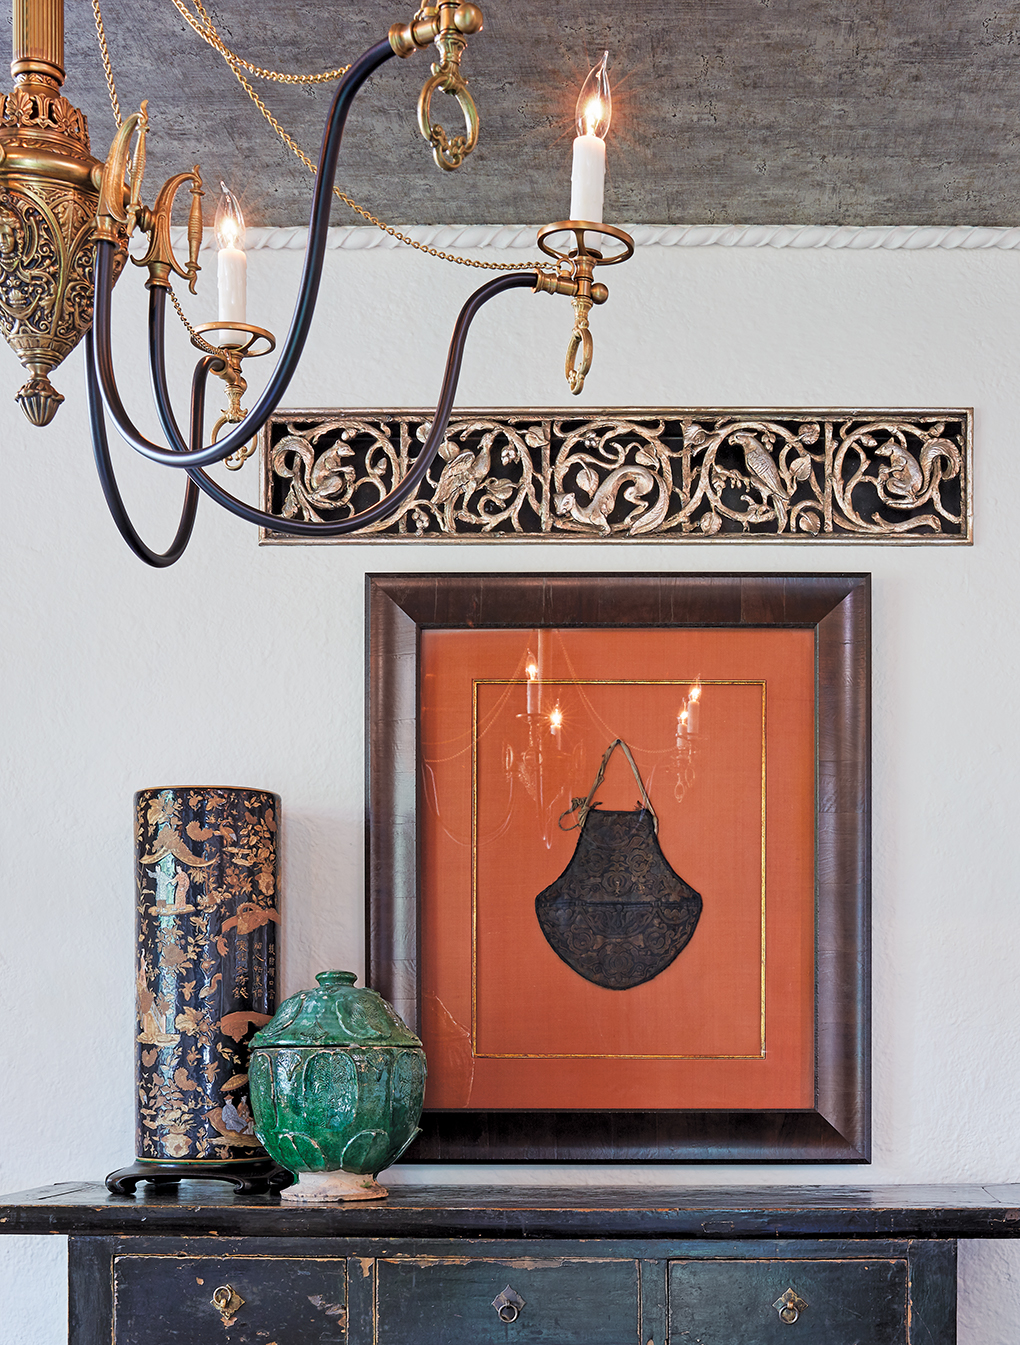 A Chinese peasant bag sits framed above a table. In the foreground is an ornate chandelier.